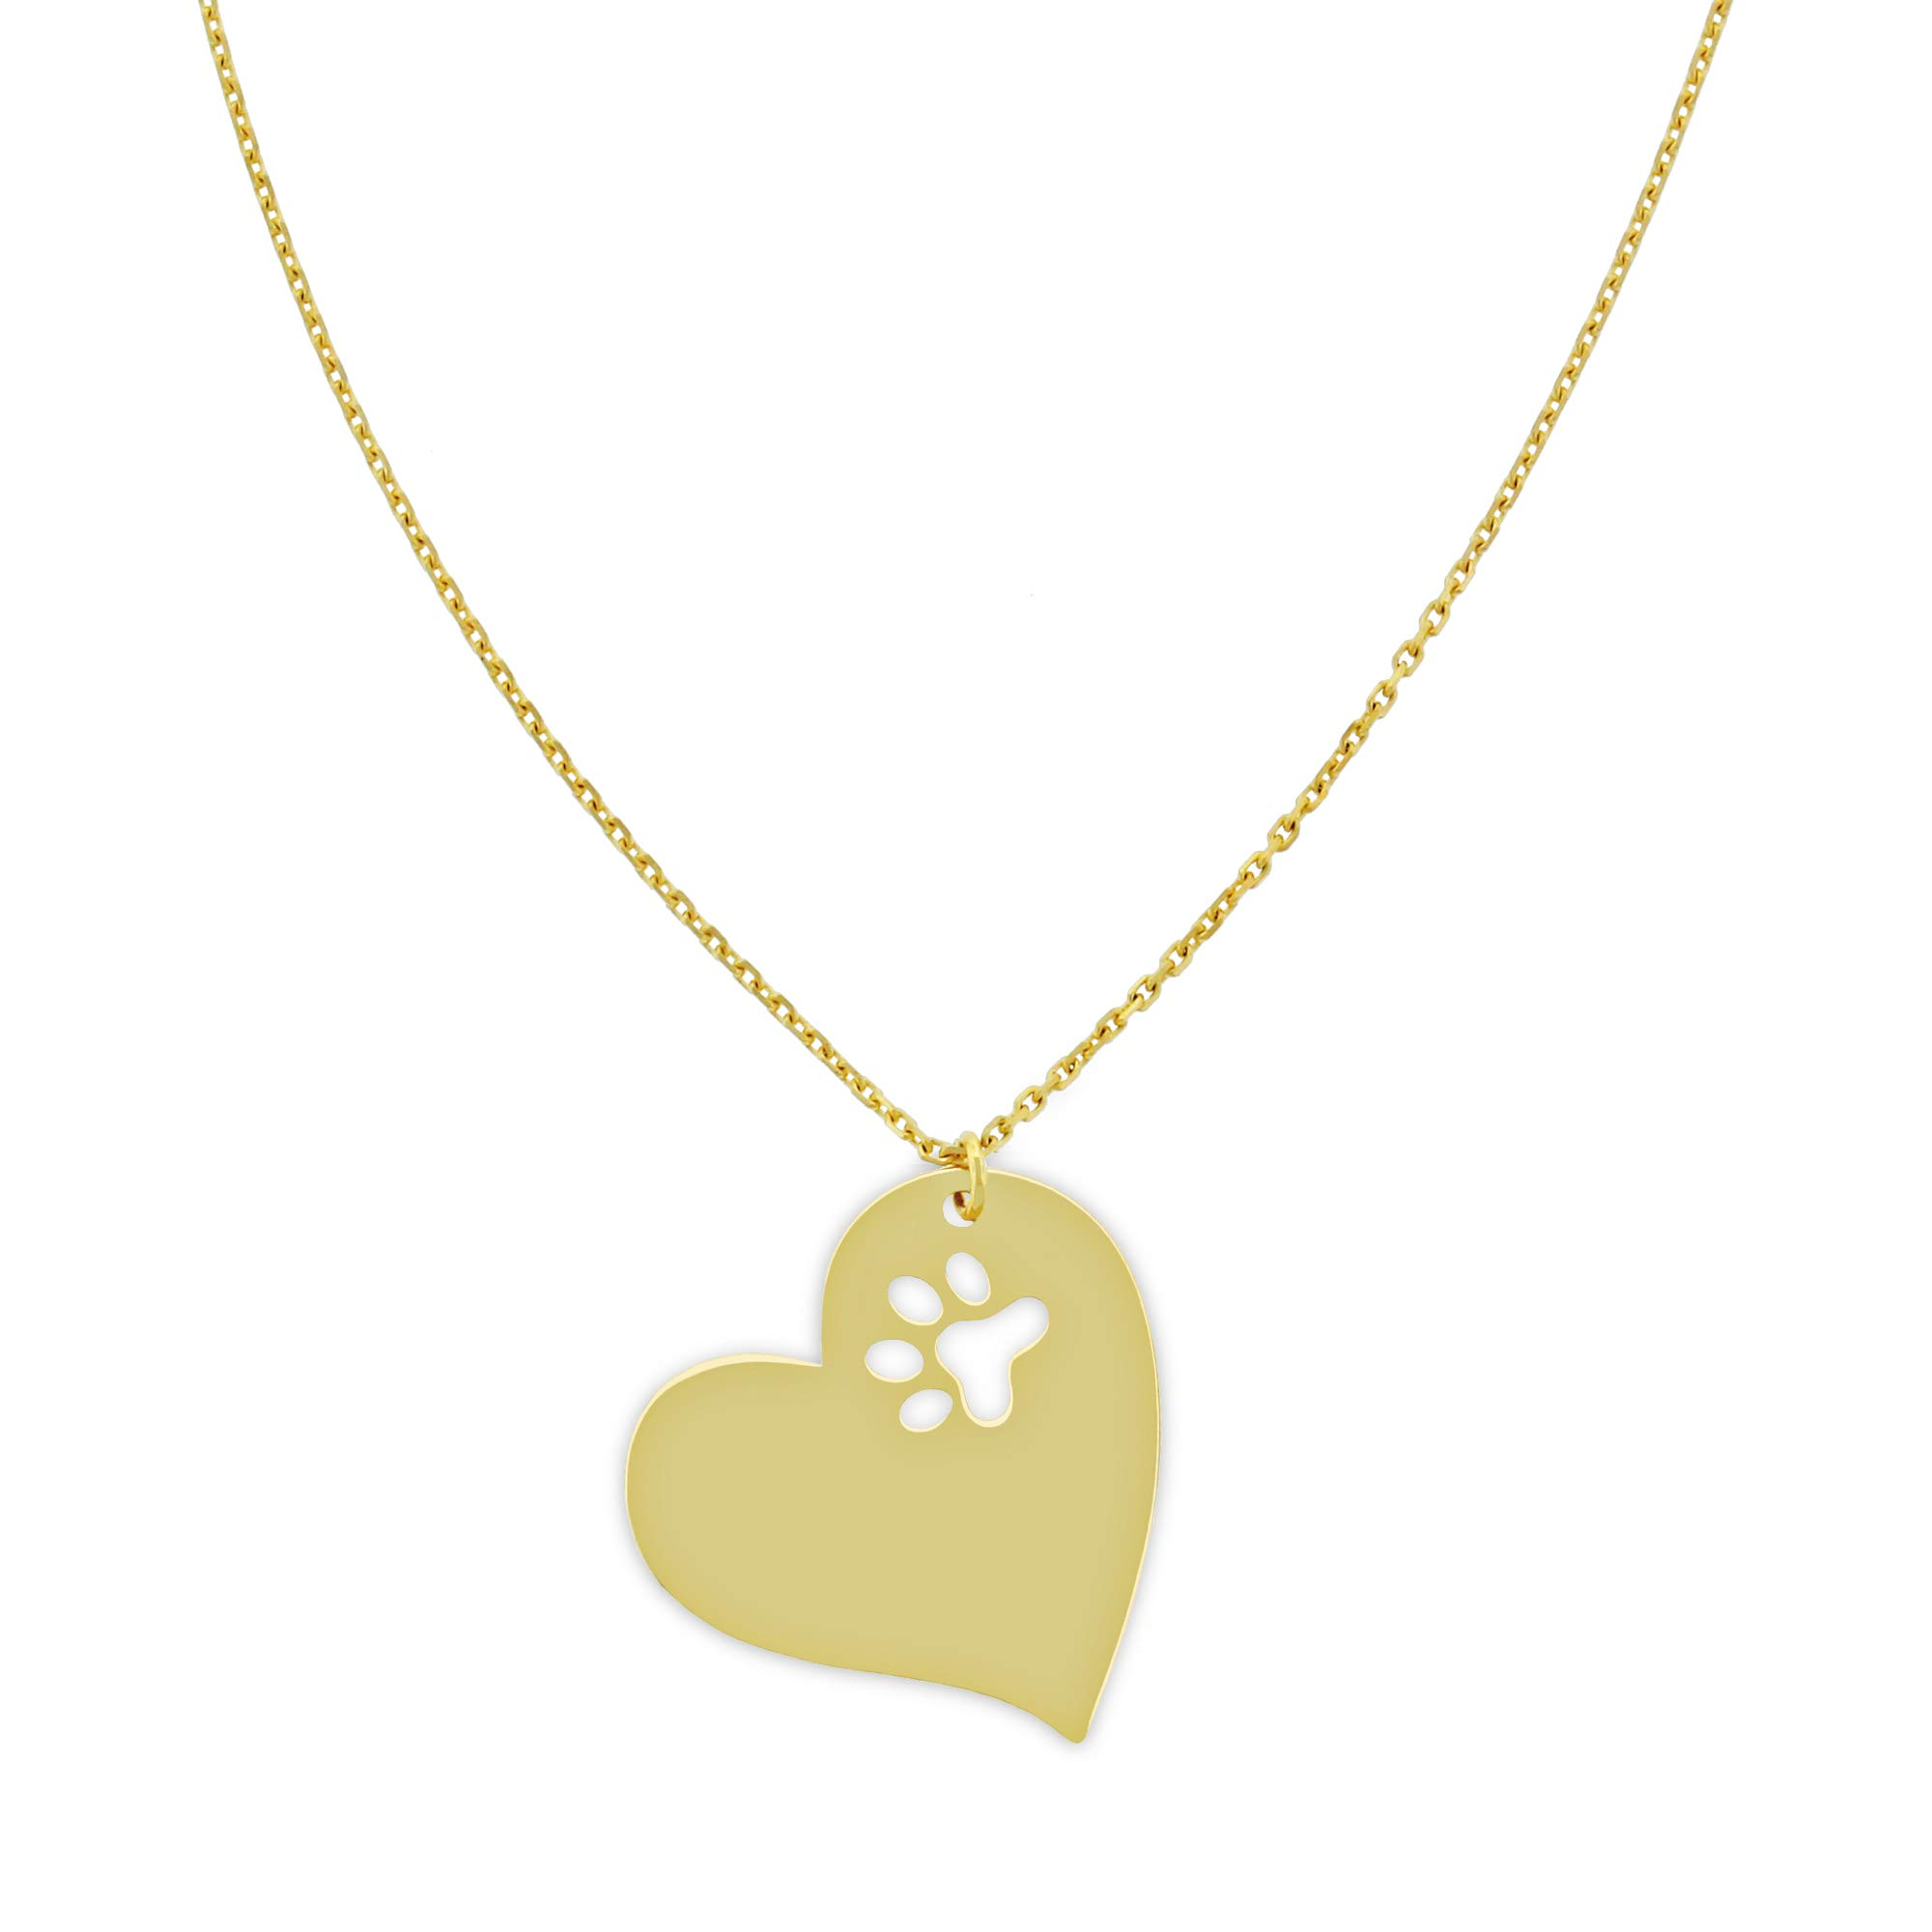 Charm America Gold Dog Paw Inside Heart Adjustable Necklace - 14 Karat Solid Gold by Charm America (Image #1)